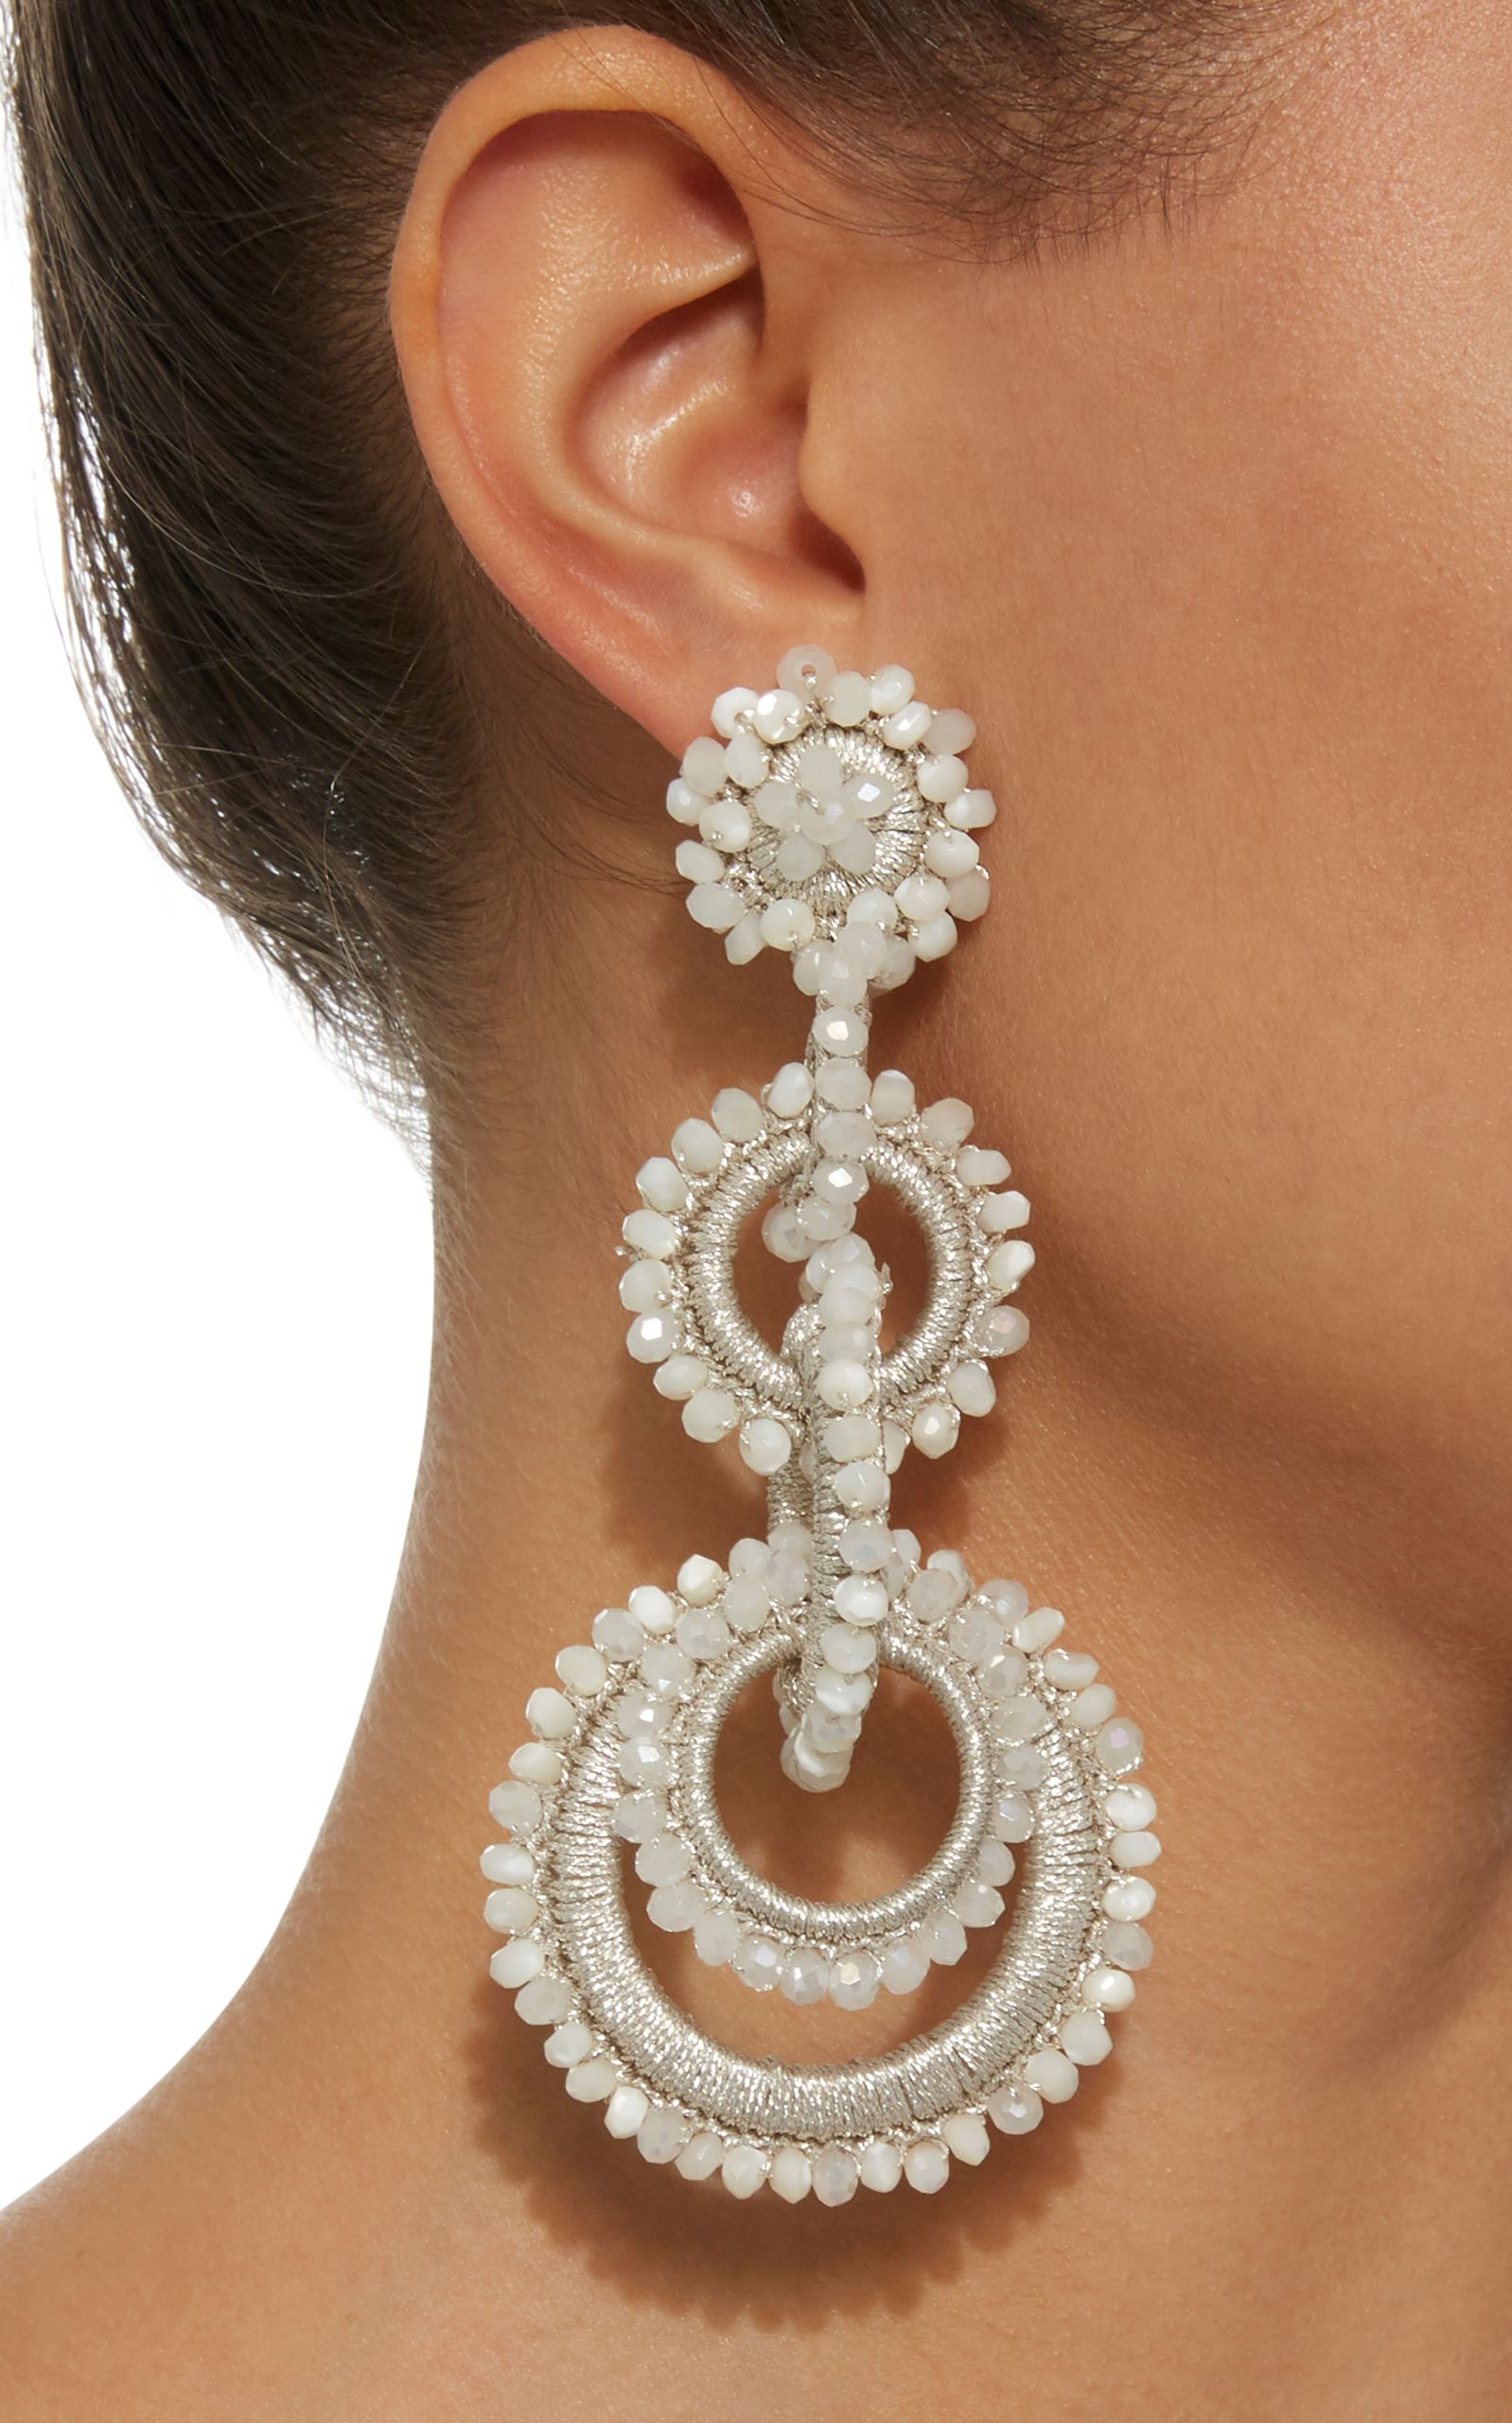 White Crystal and Mother of Pearl Sundrop Earrings  cc977aadc96